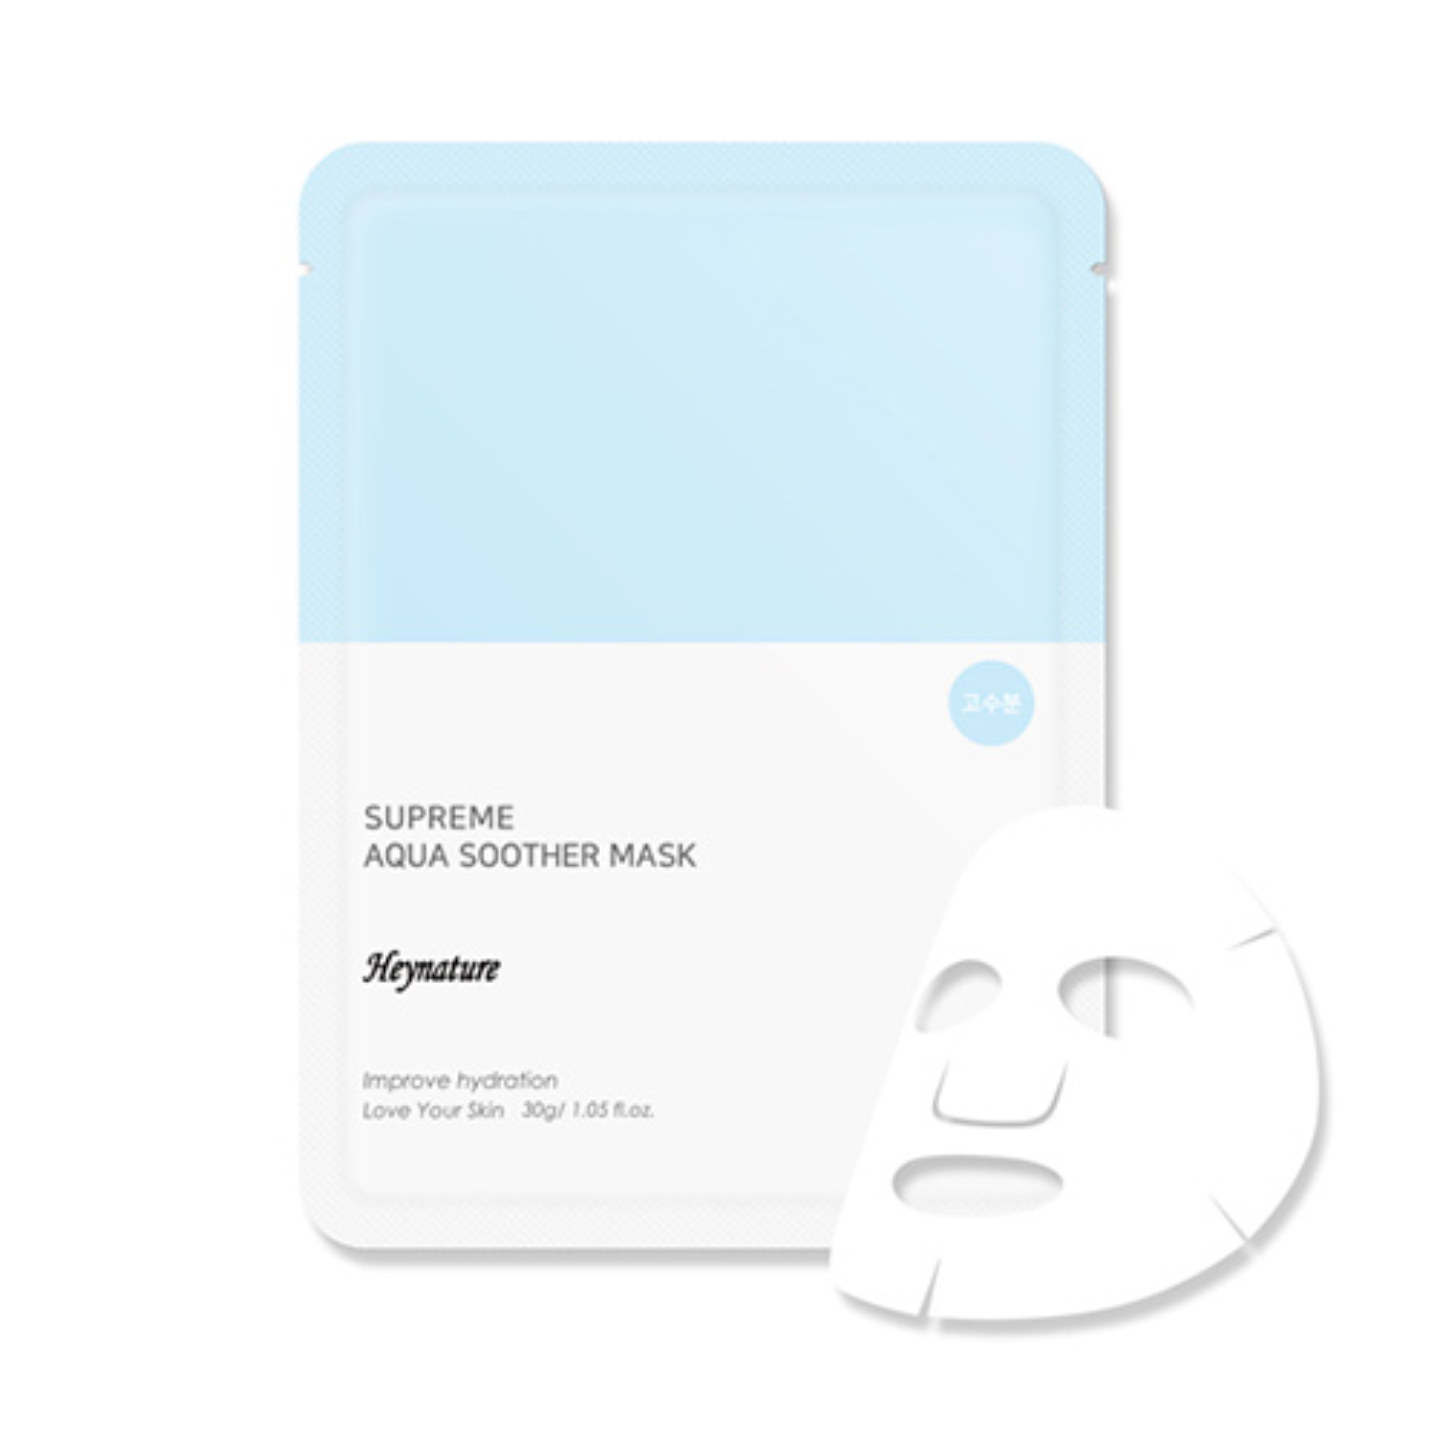 Heynature Supreme Aqua Soother Mask - 30g